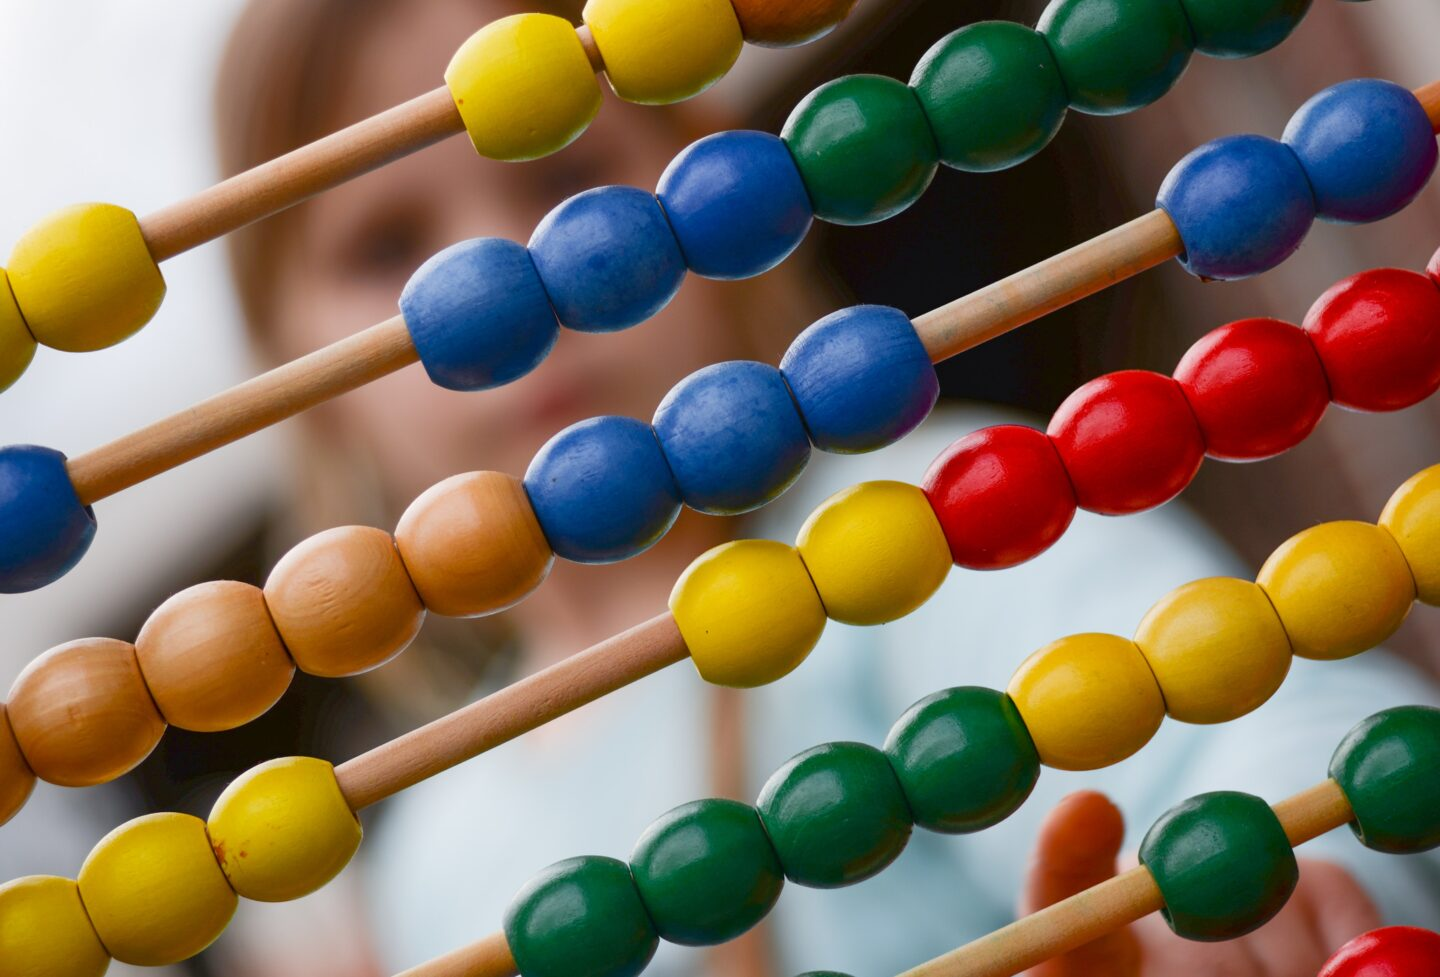 The abacus or a counting frame with color beads for kids